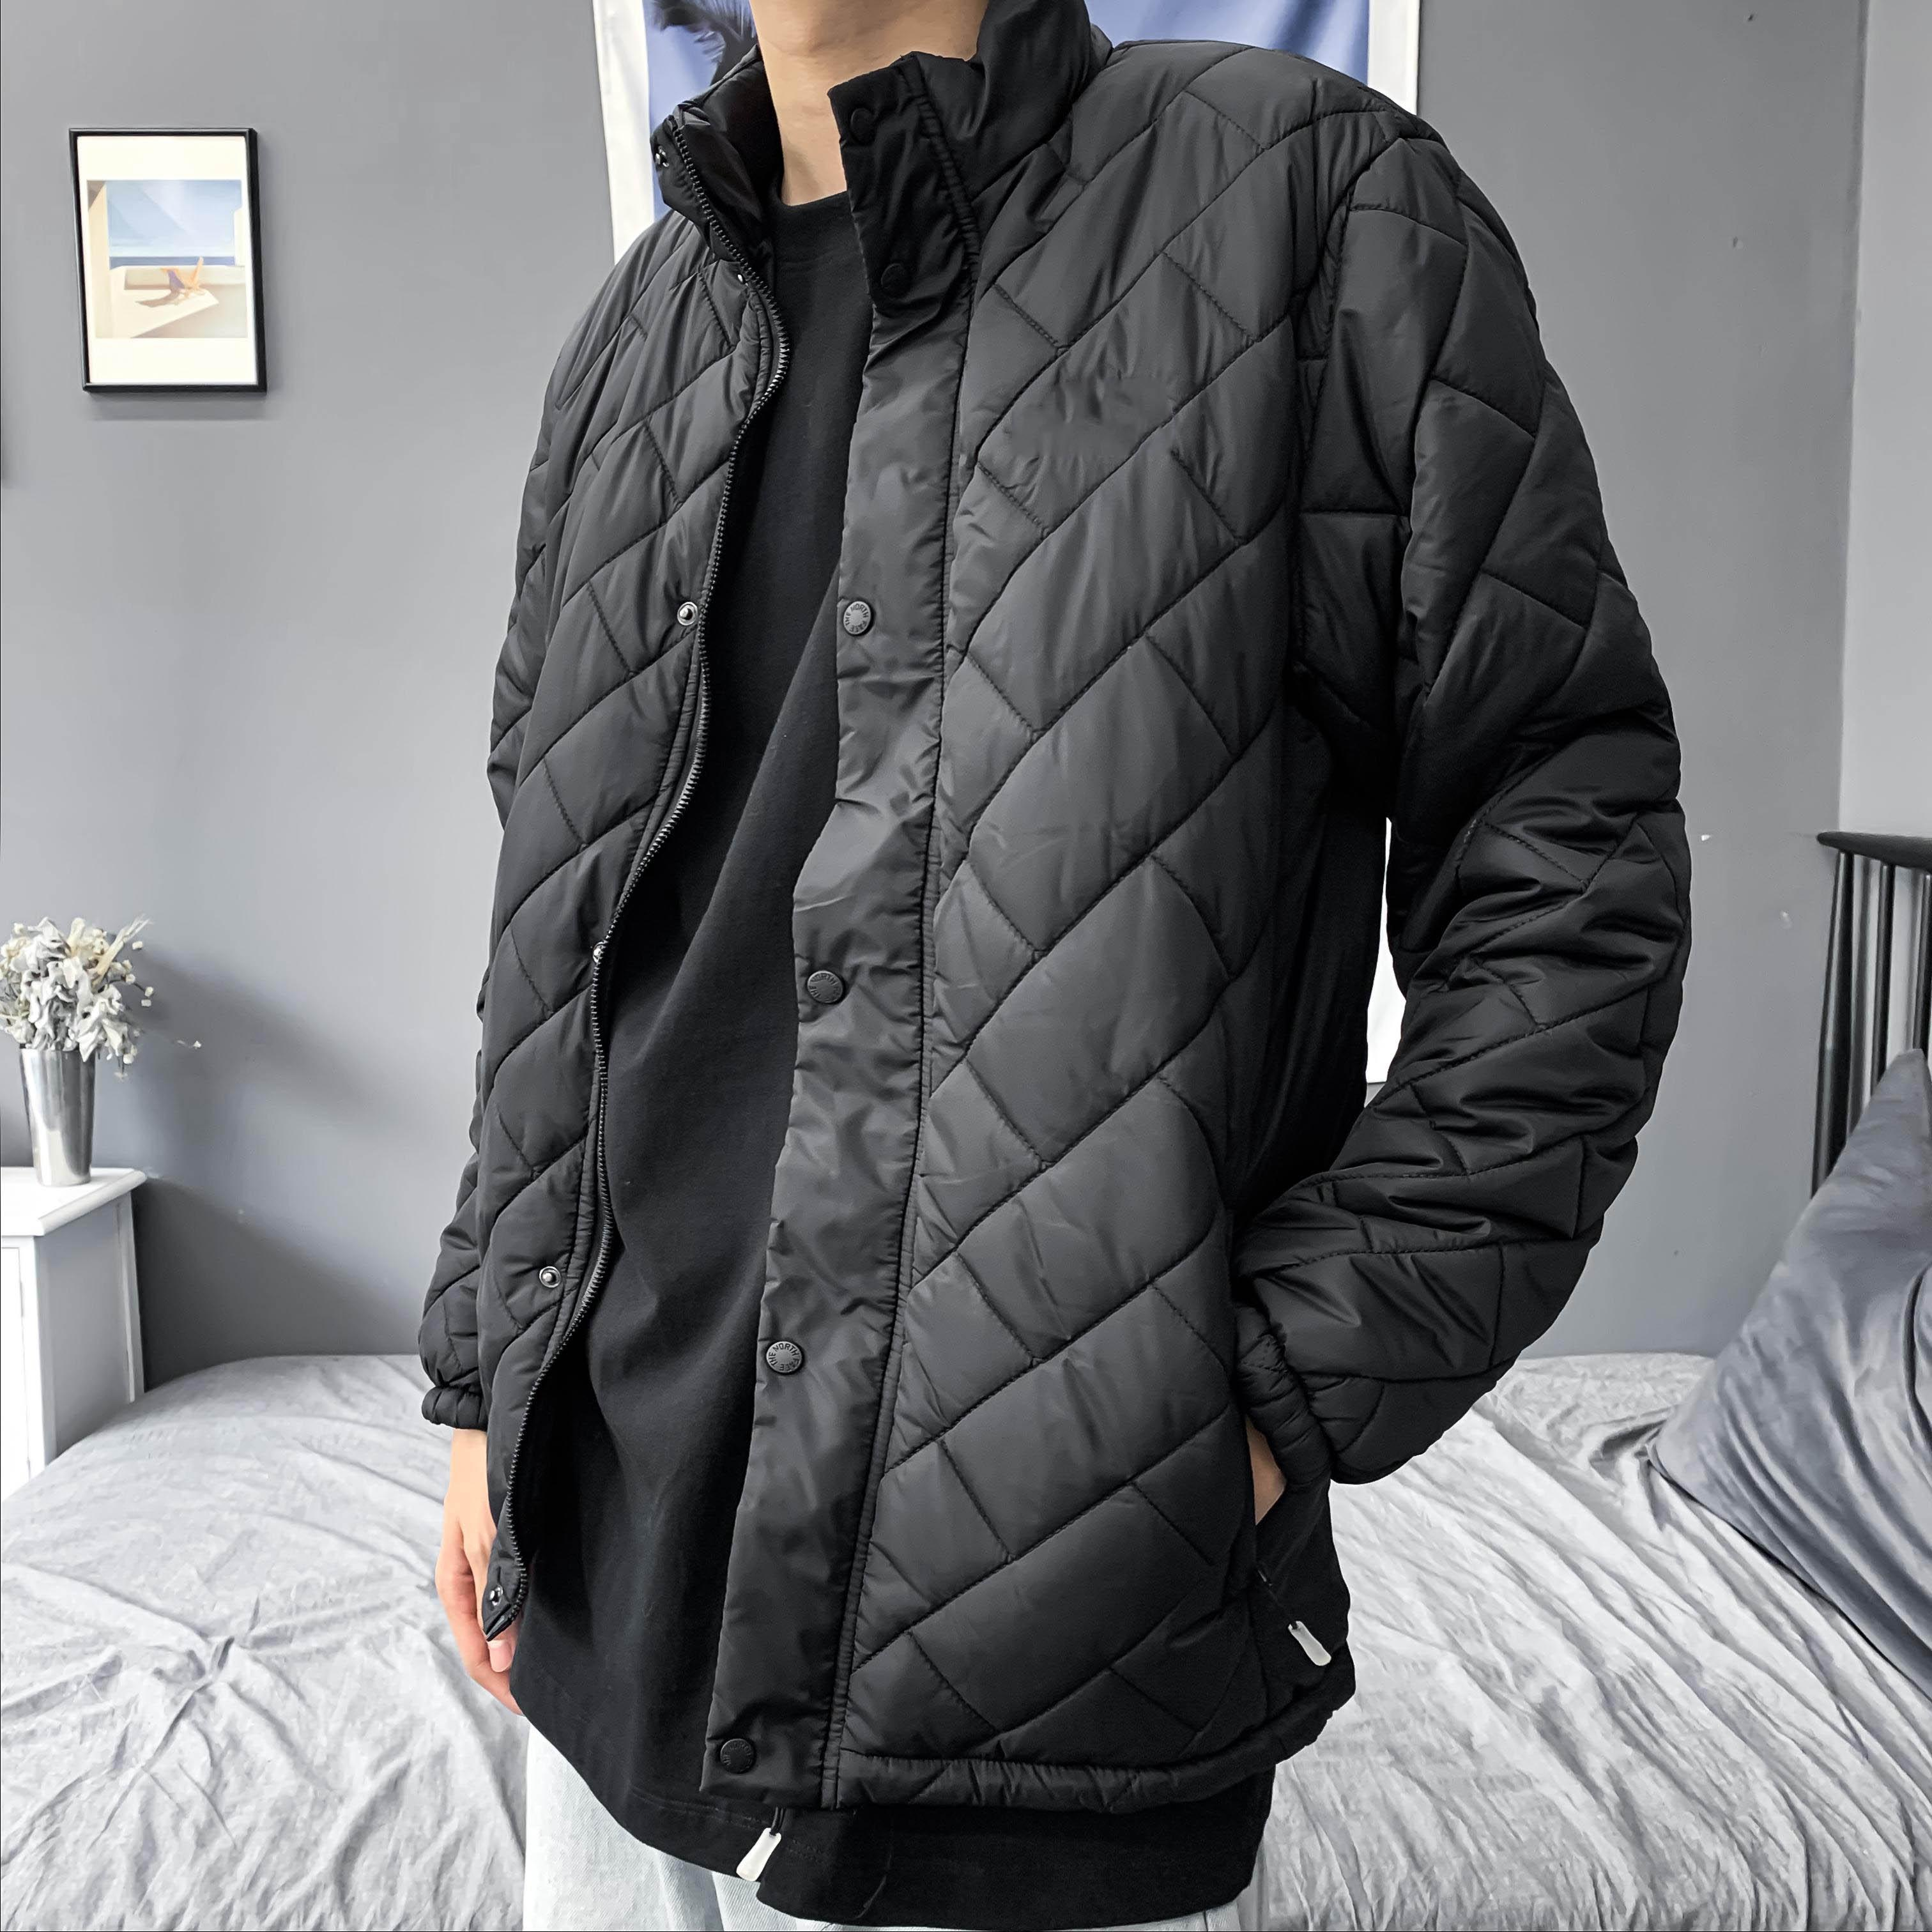 High Quality Men Women 20FW New Jacket Designer Coat for Winter Grey Black with Popular Outdoor Jacket Coat Letter Embroidery Size M-3XL